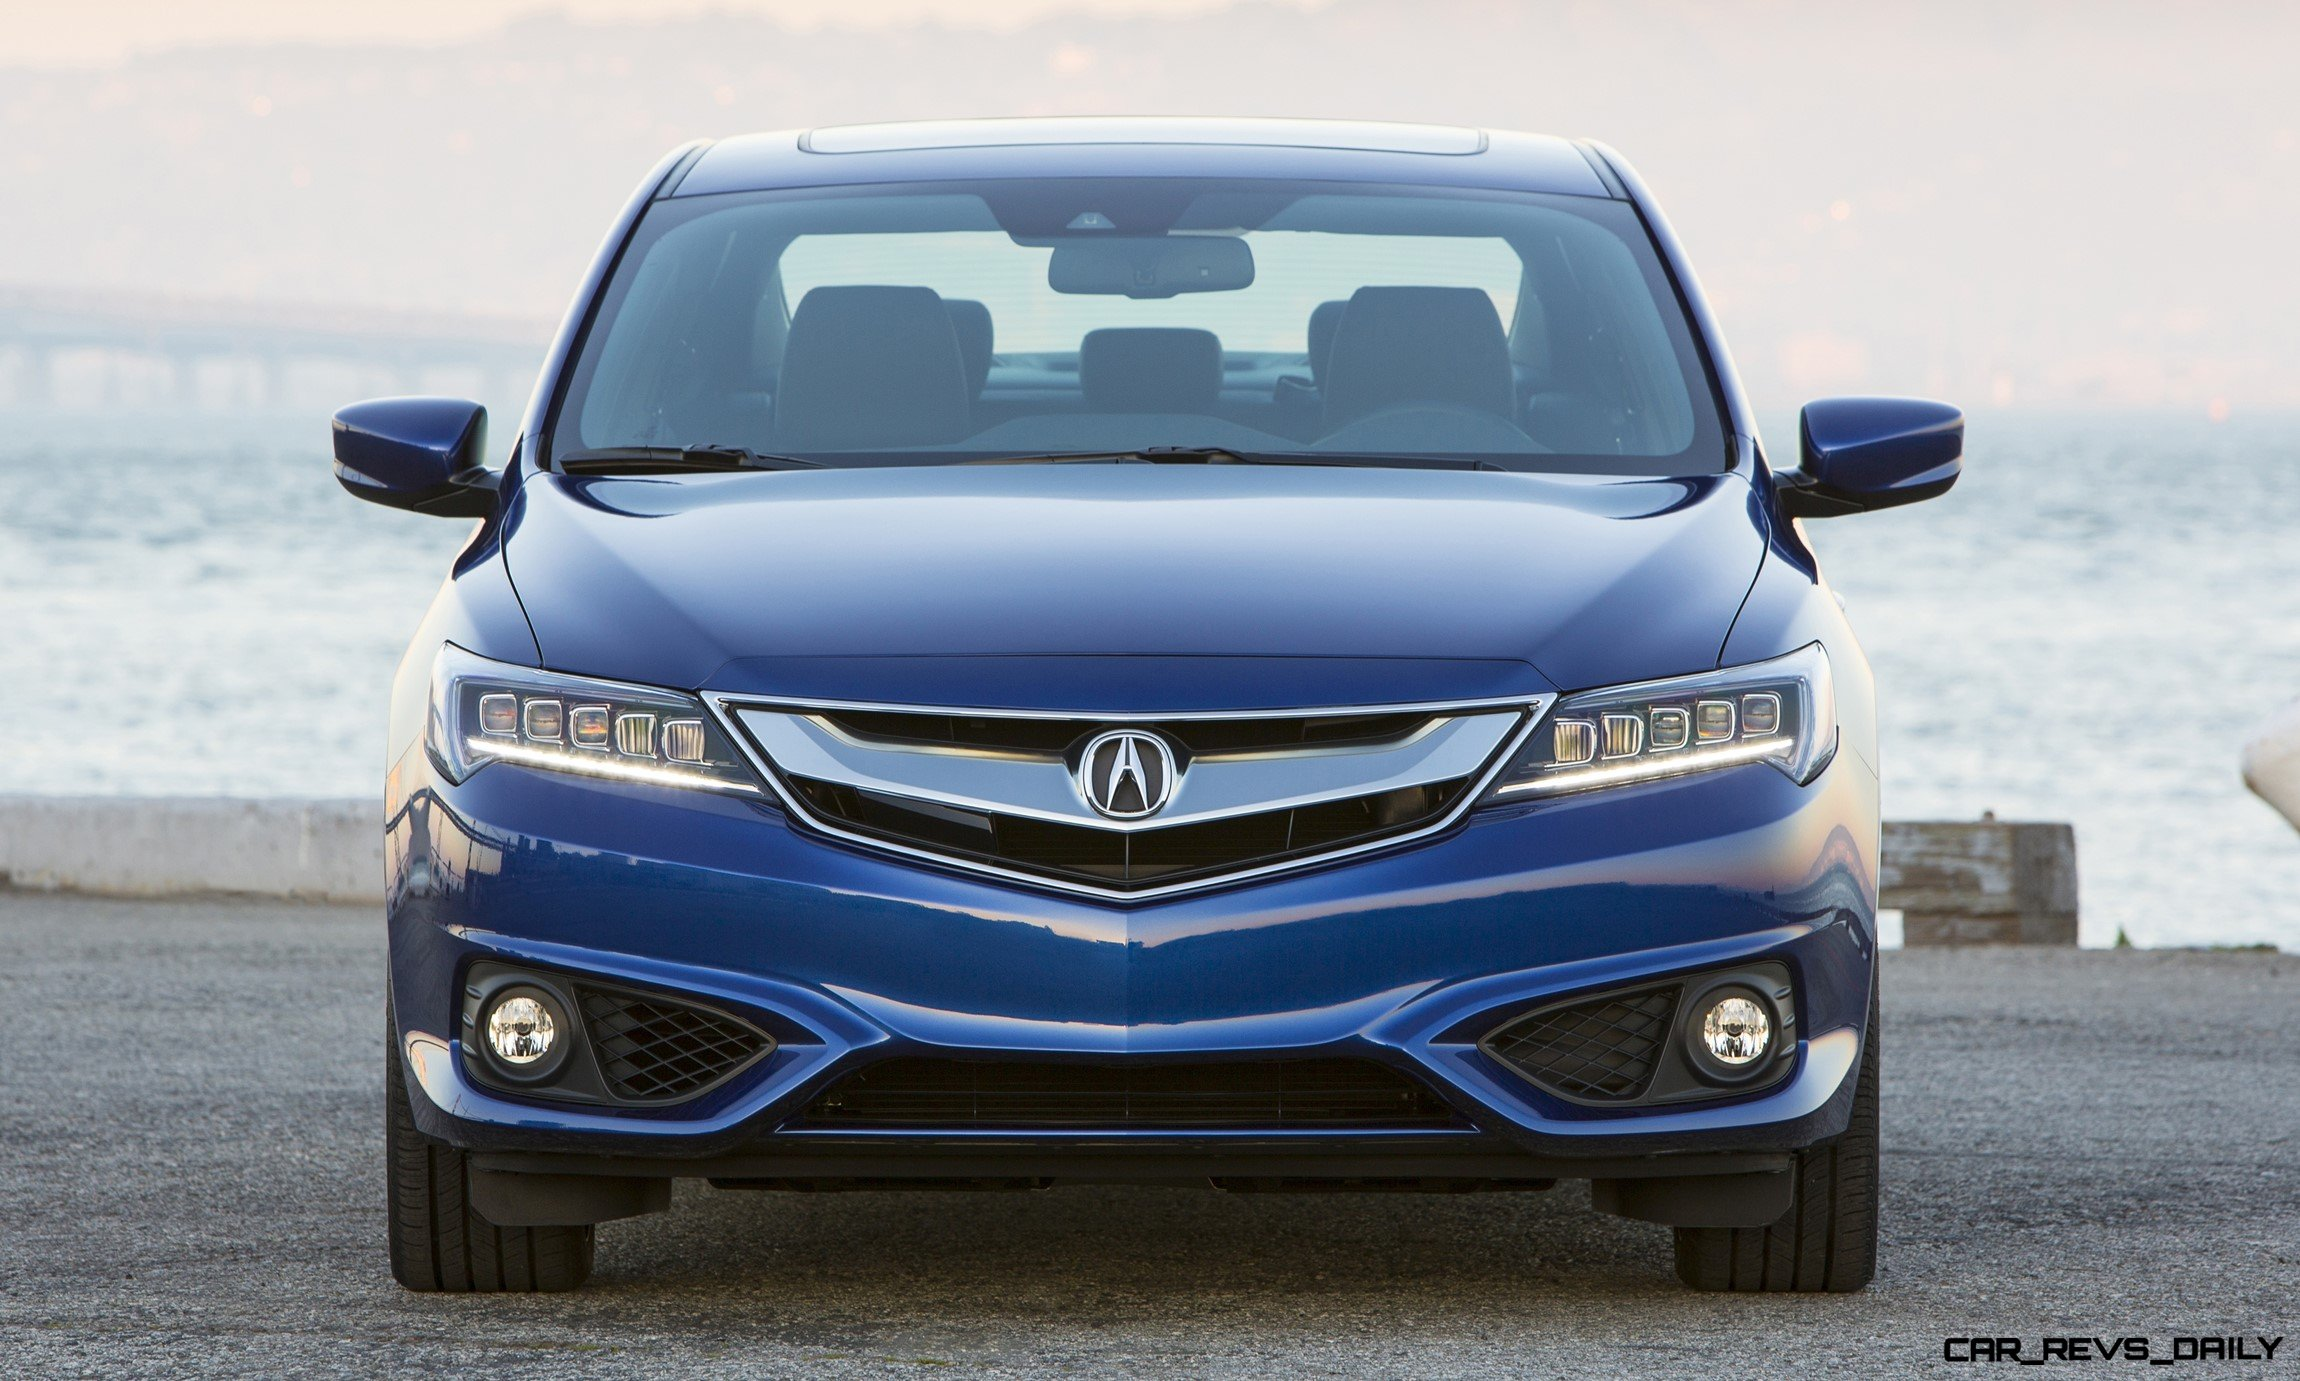 2016 Acura ILX A-SPEC Makes Credible, Playful and Chic Audi A3-Fighter